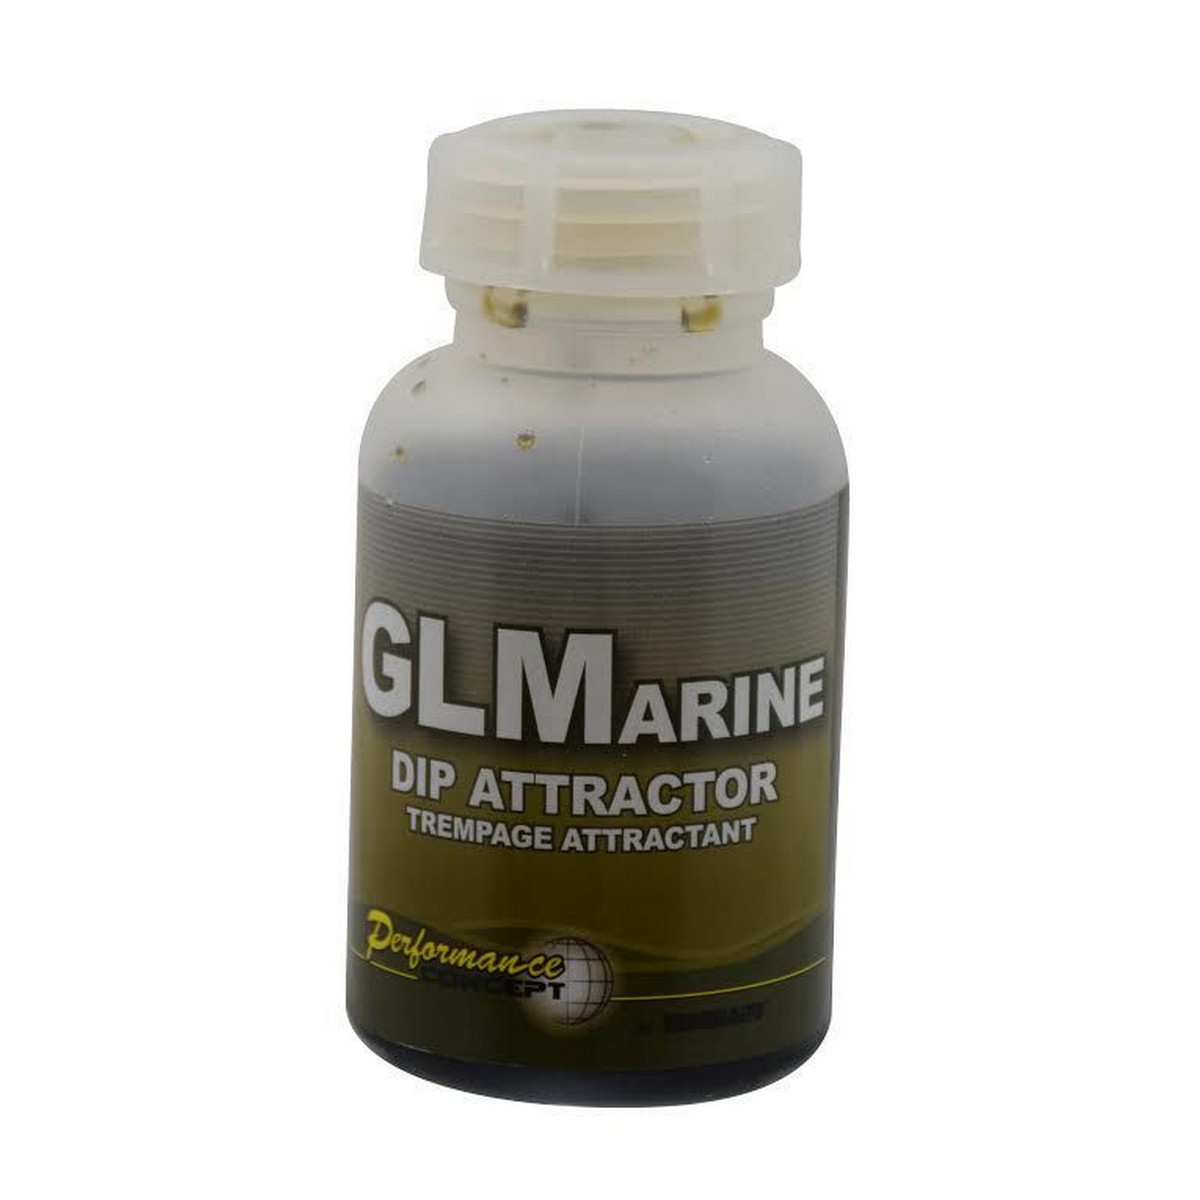 Дип Starbaits Performance Concept GLMarine Dip Attractor